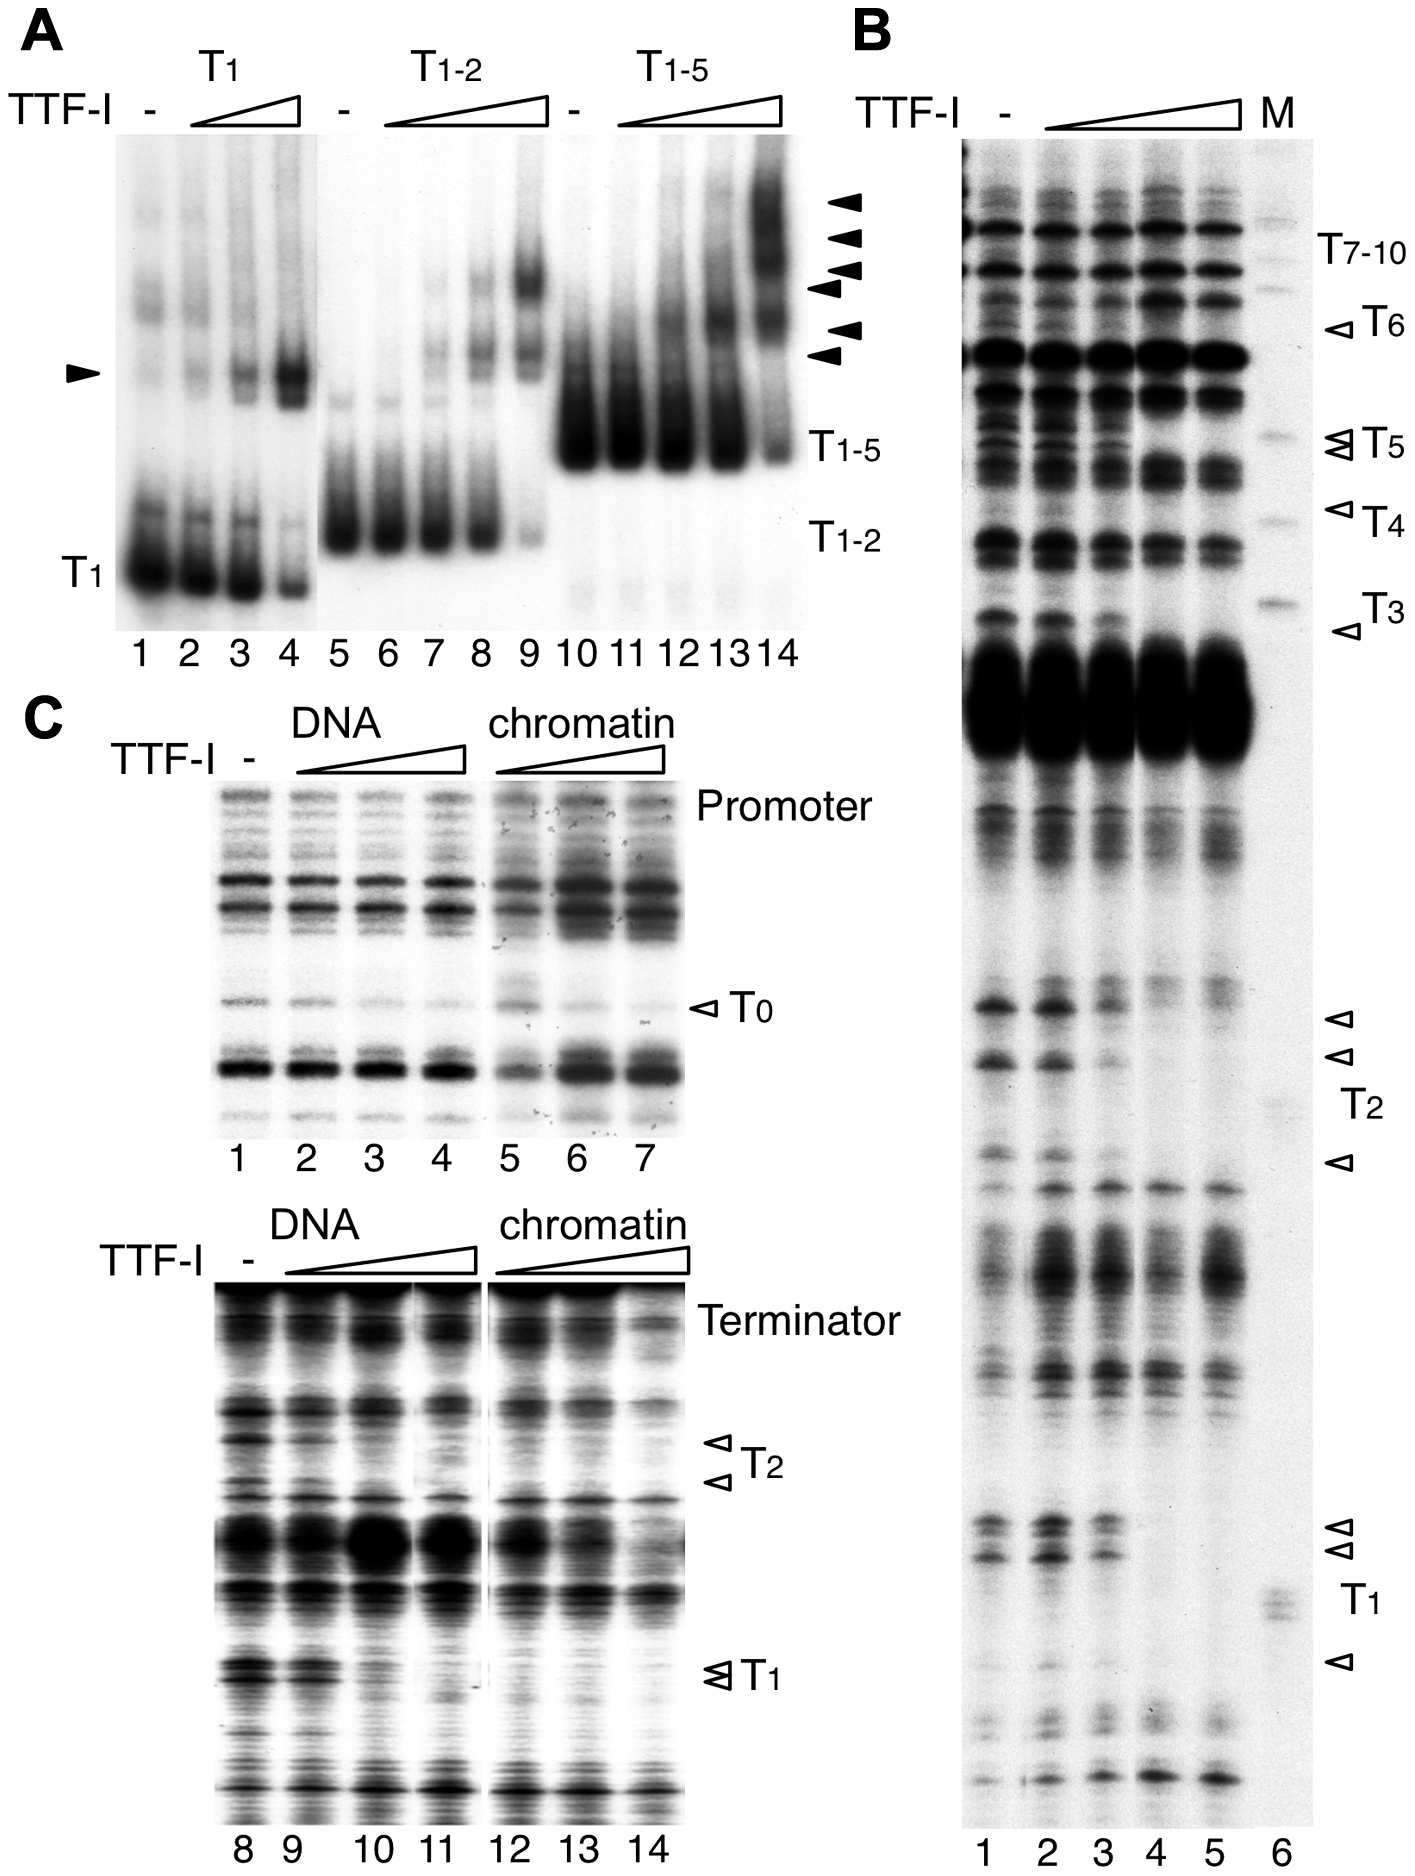 Multiple termination sites enable cooperative binding of TTF-I to chromatin.